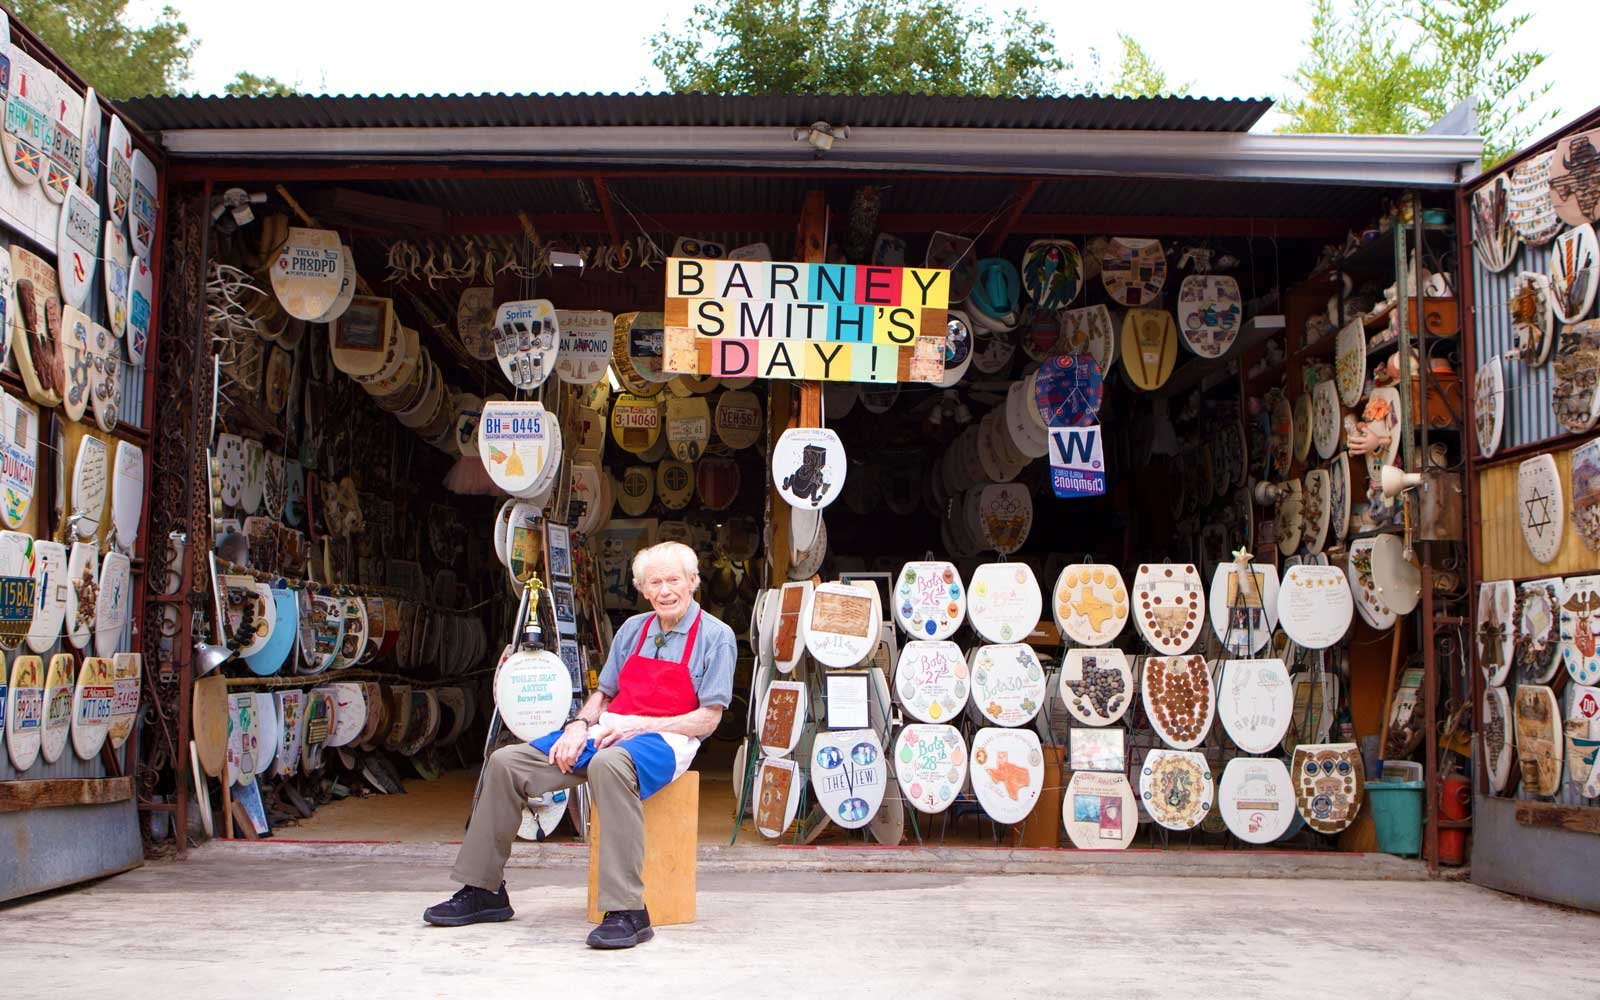 Texas Colleges And Universities >> At 96 Years Old, Barney Smith Is Putting His Toilet Seat ...